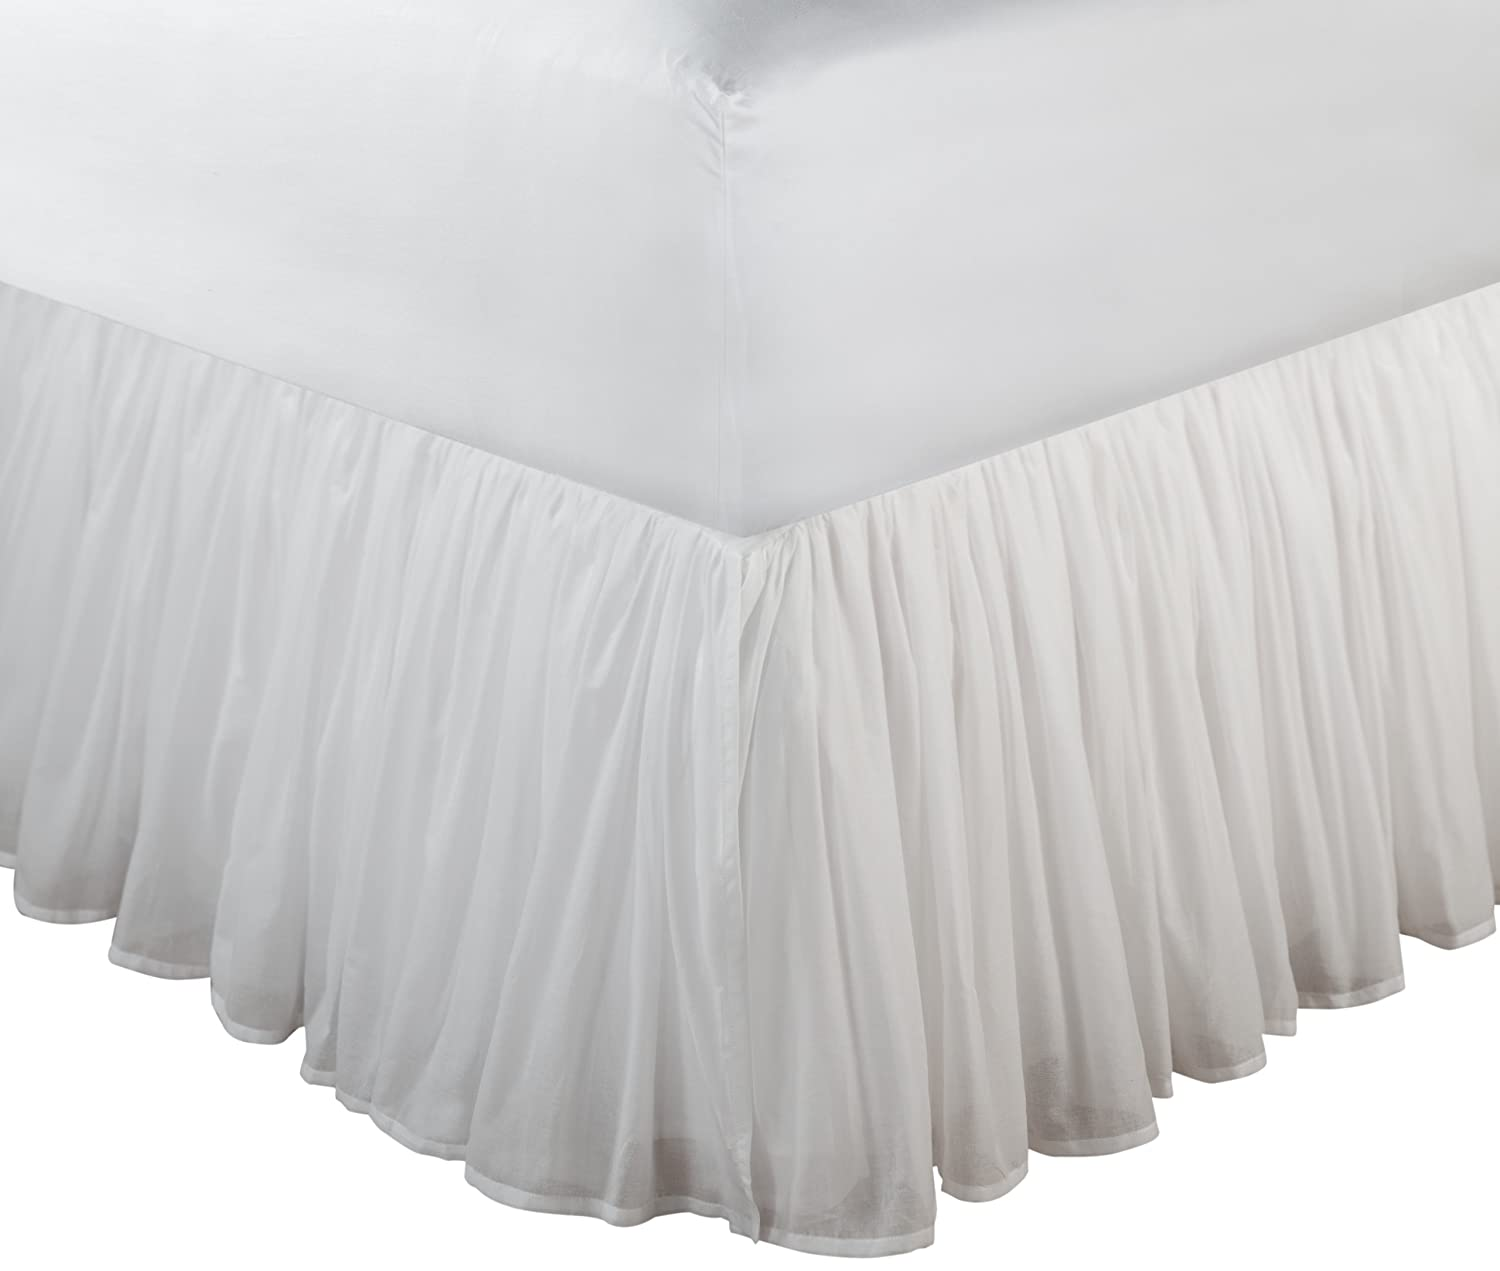 Amazon Com Greenland Home Fashions Cotton Voile 18 Inch White Bed